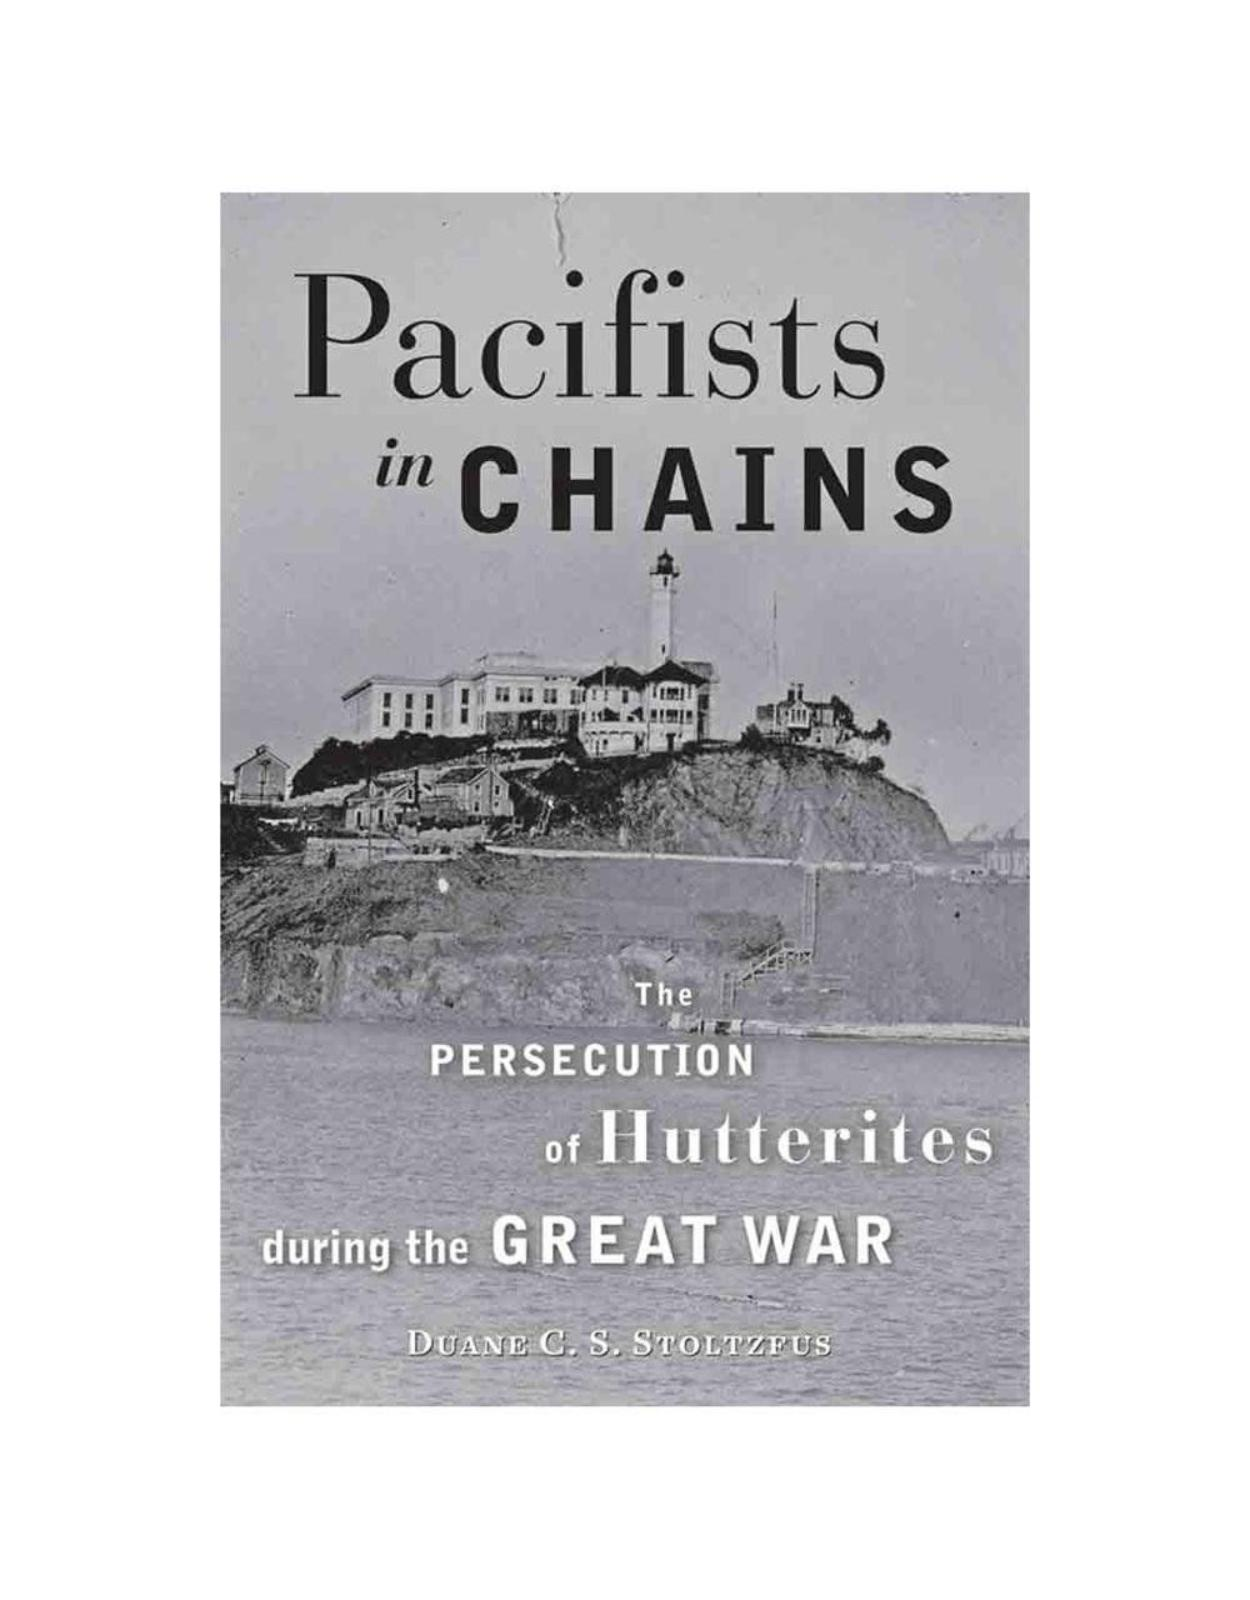 Pacifists in Chains. The Persecution of Hutterites during the Great War